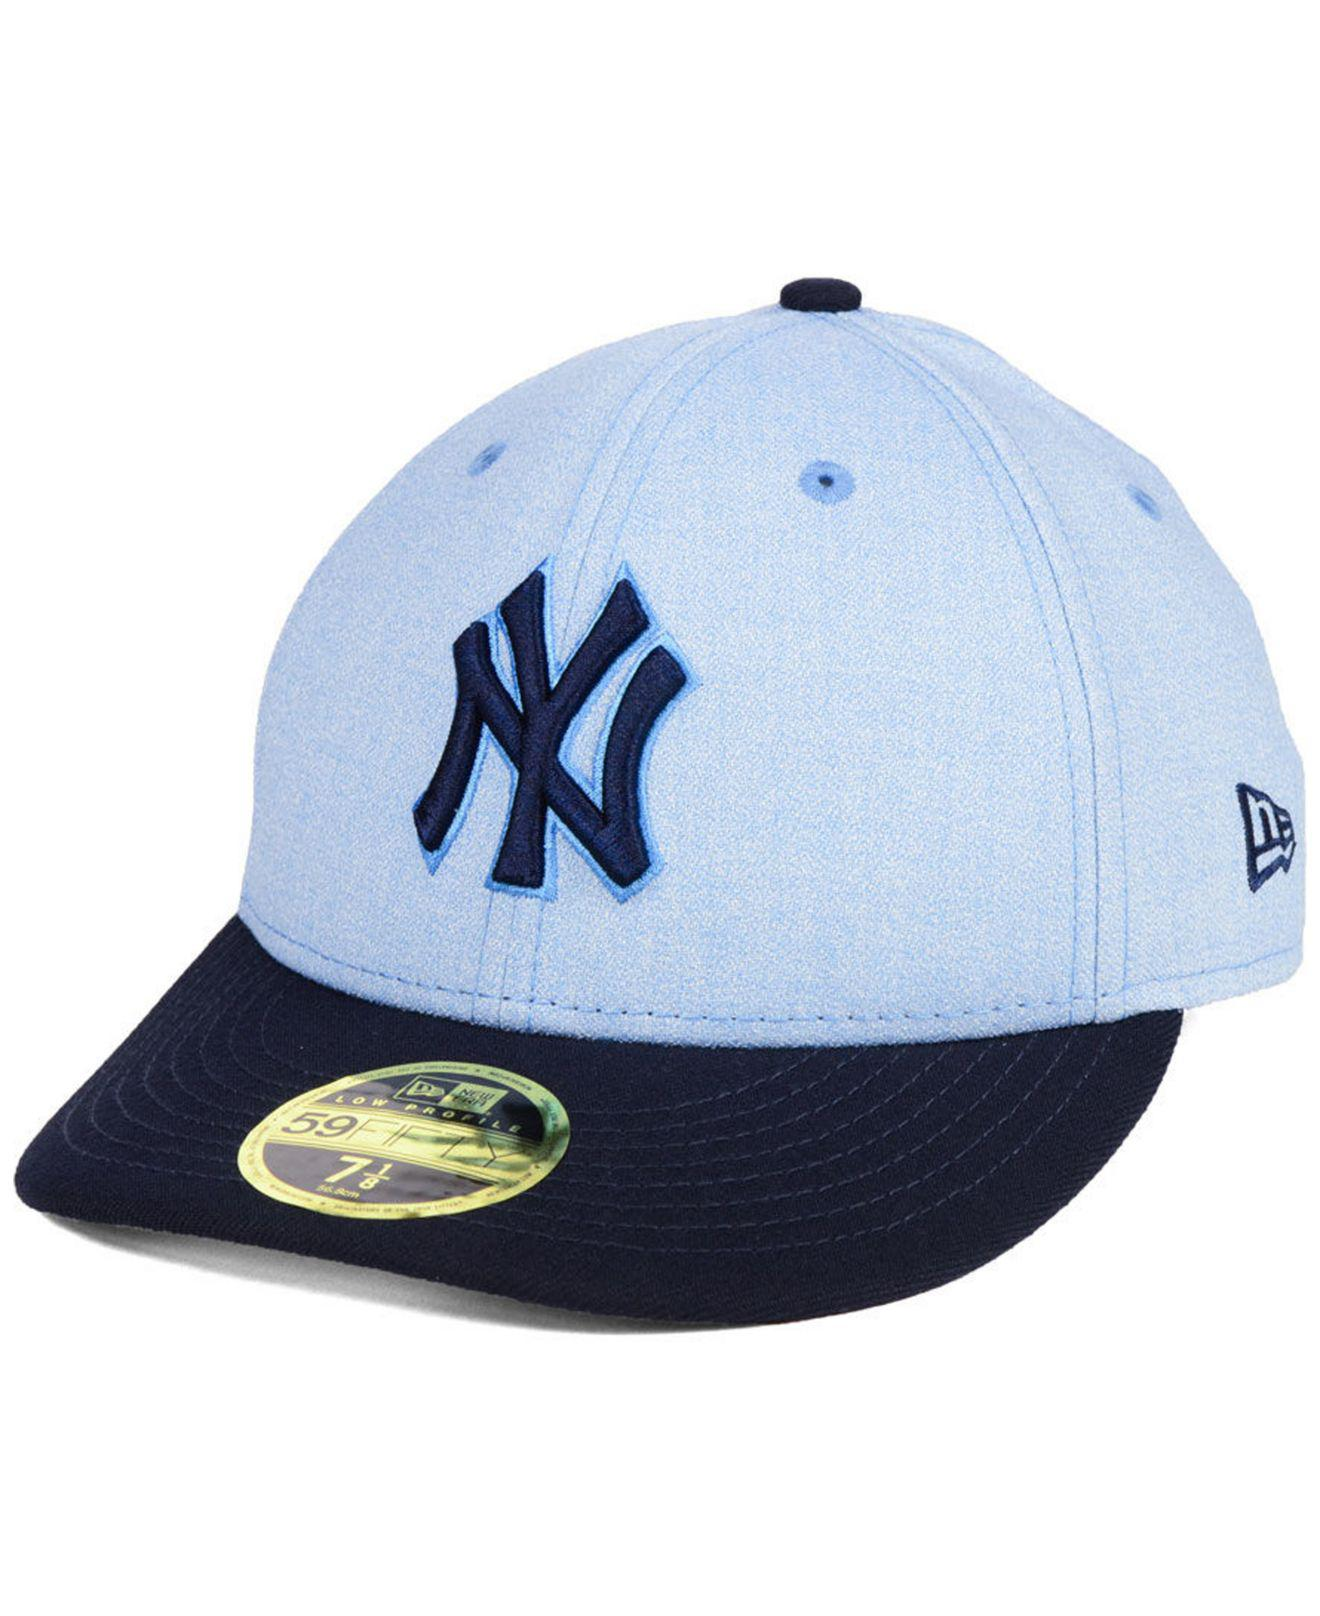 de0038f1138 New York Yankees Fathers Day Hat